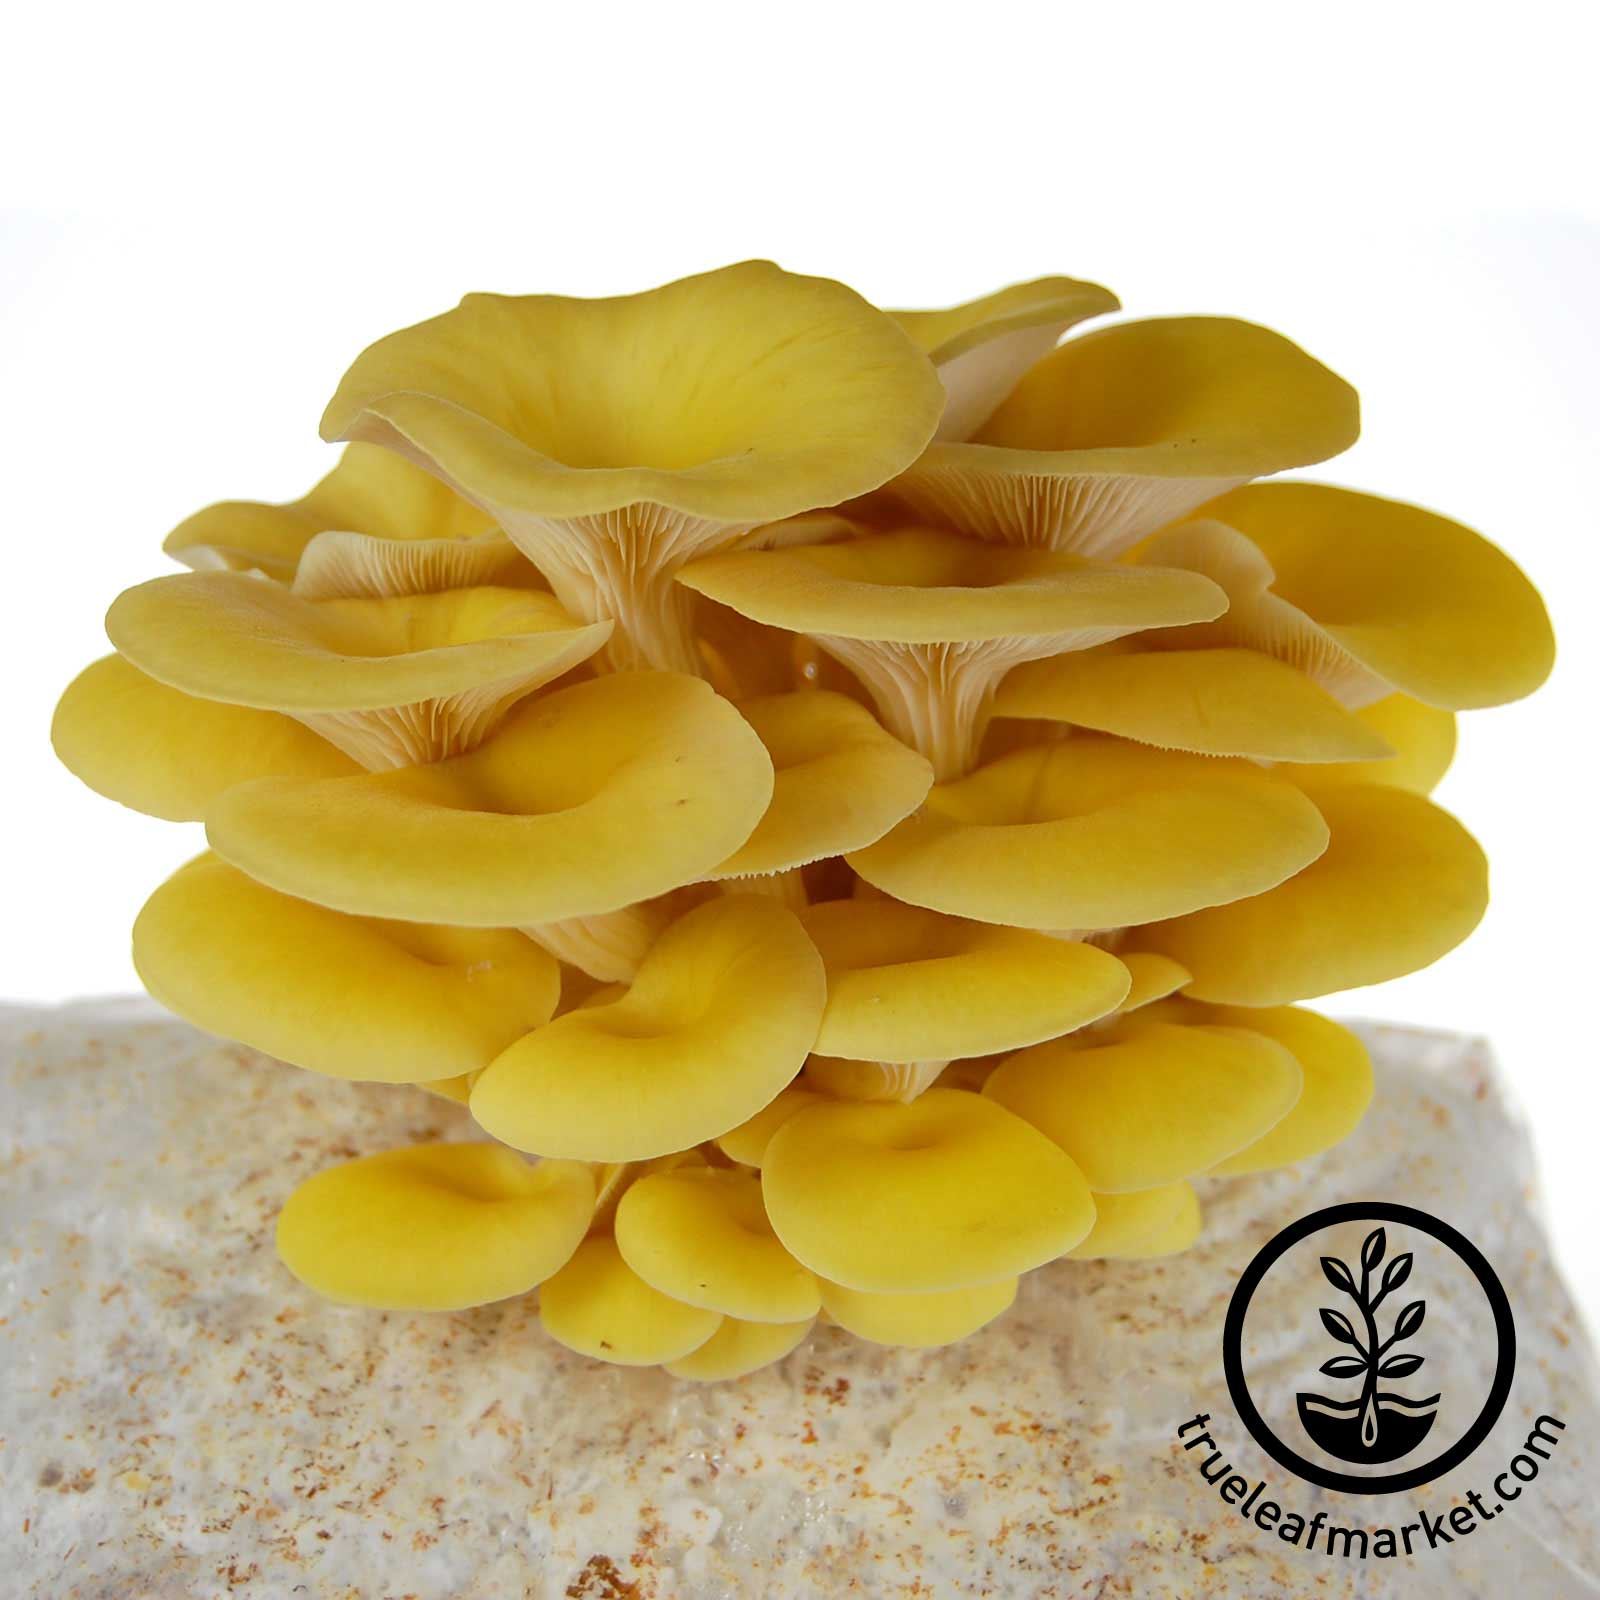 Mojo Pro-Gro Yellow Oyster Mushroom Grow Kit mojo, go, pro, organic, yellow, mushroom, growing, kits